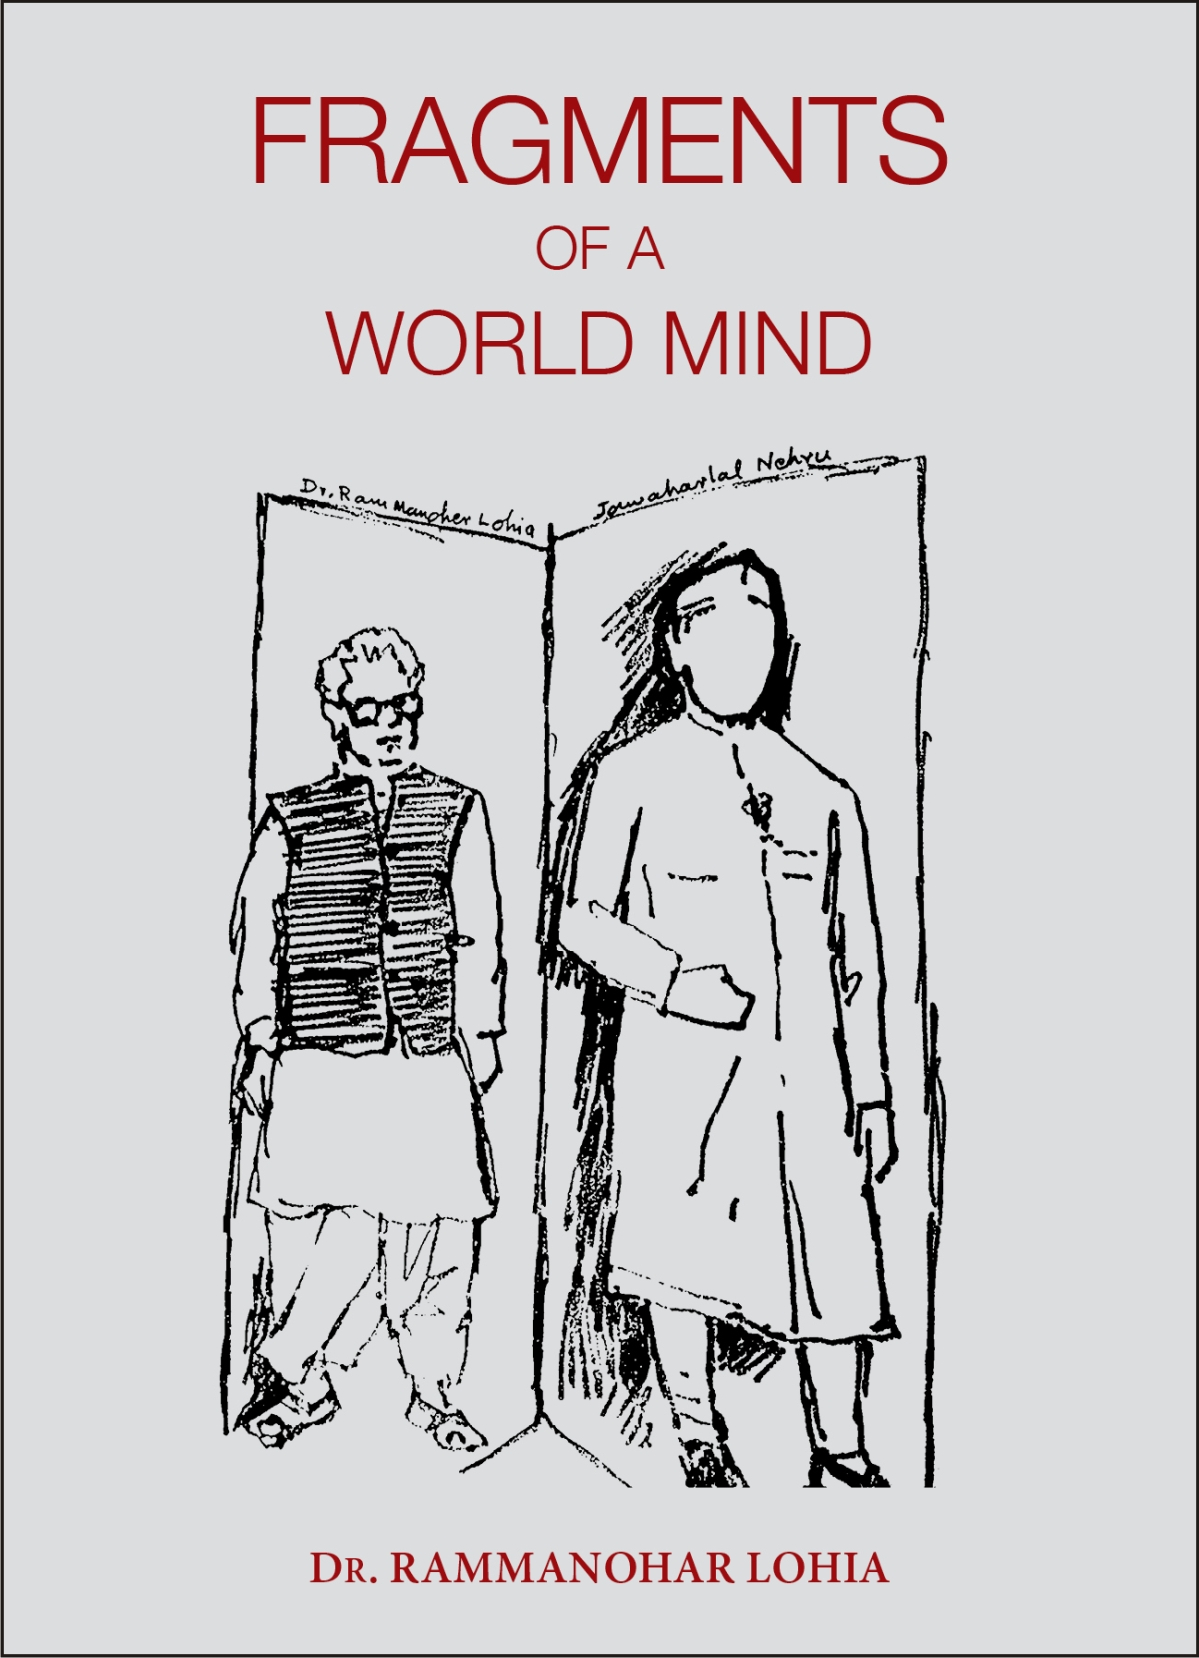 Fragments of a world mind